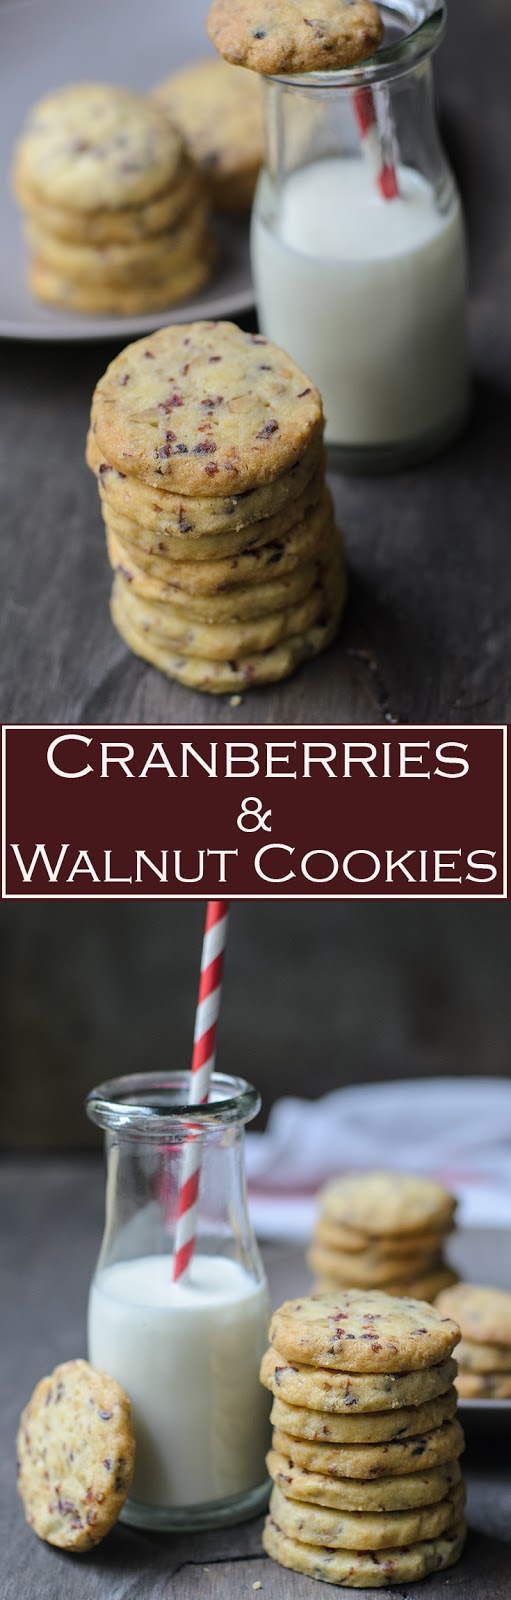 Cranberries and Walnut Cookies recipe. Melt in the mouth, delicious and addictive Cranberries and walnut cookies. These cranberries and walnut cookies makes an excellent gifts for families and friends this Christmas.